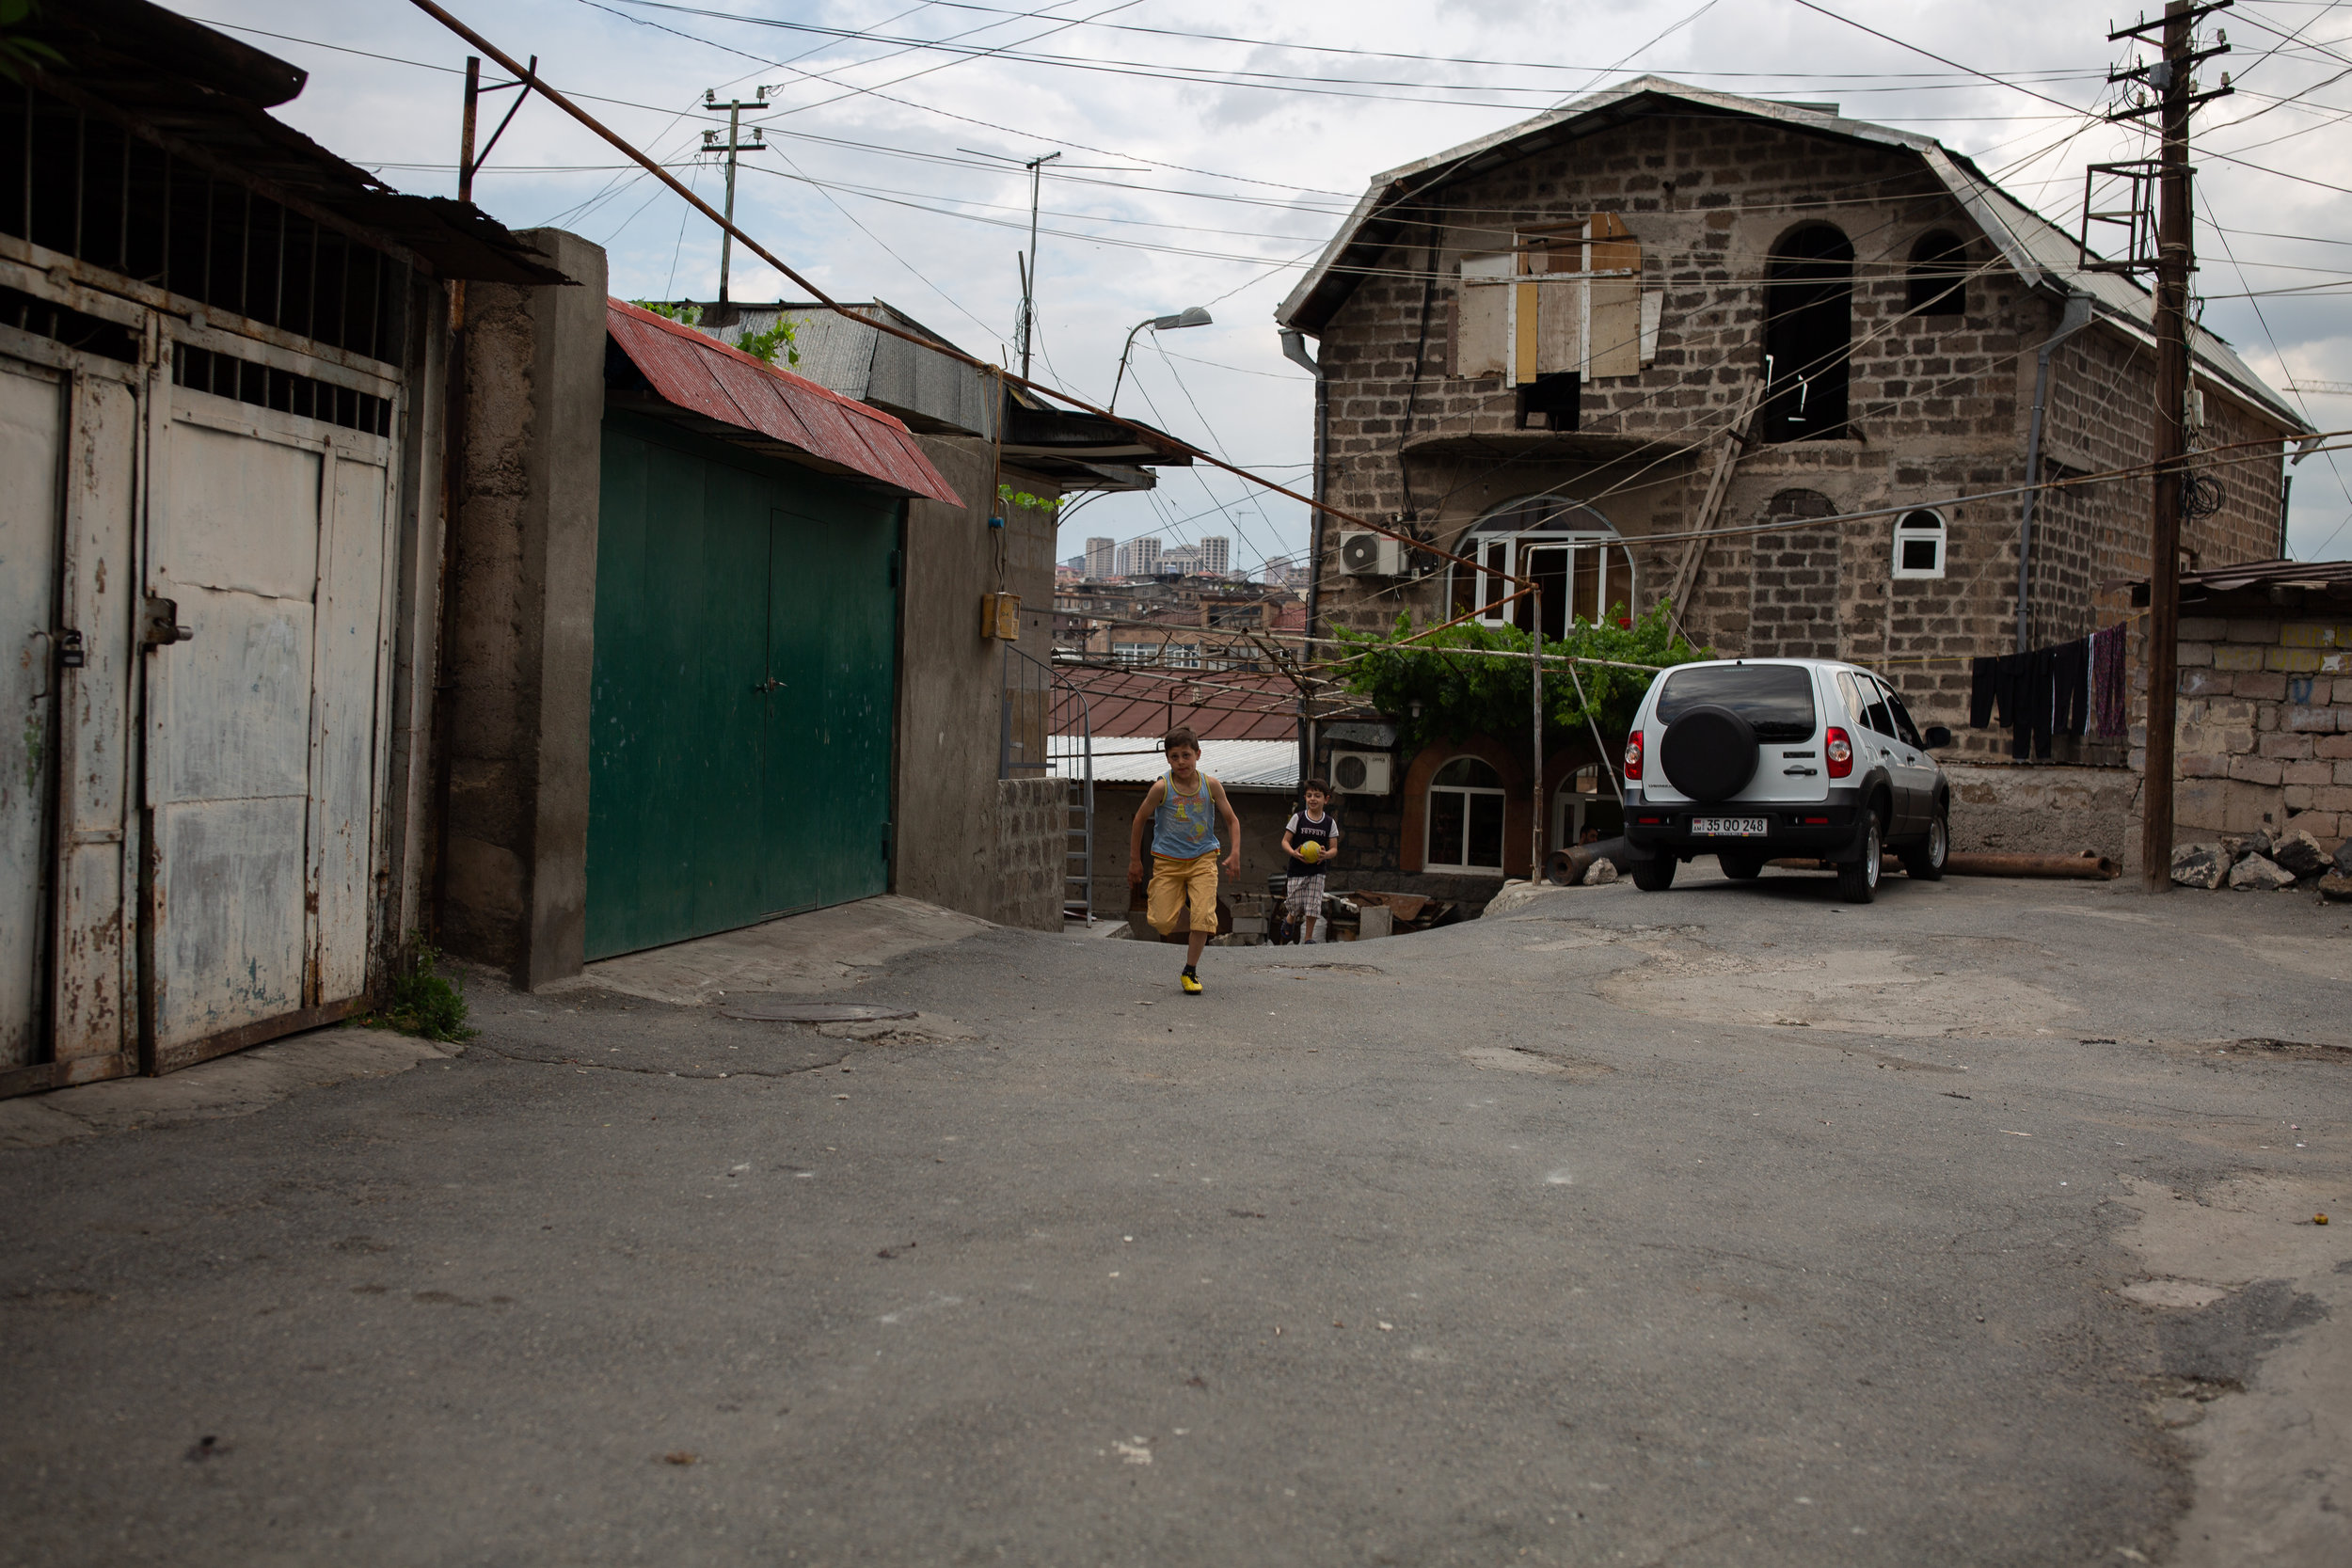 Approaching one of few markets in Kond where children can purchase ice cream and adults can get their produce for dinner. There is also a building where lavash is made everyday, some say it's one of the best in the city of Yerevan.